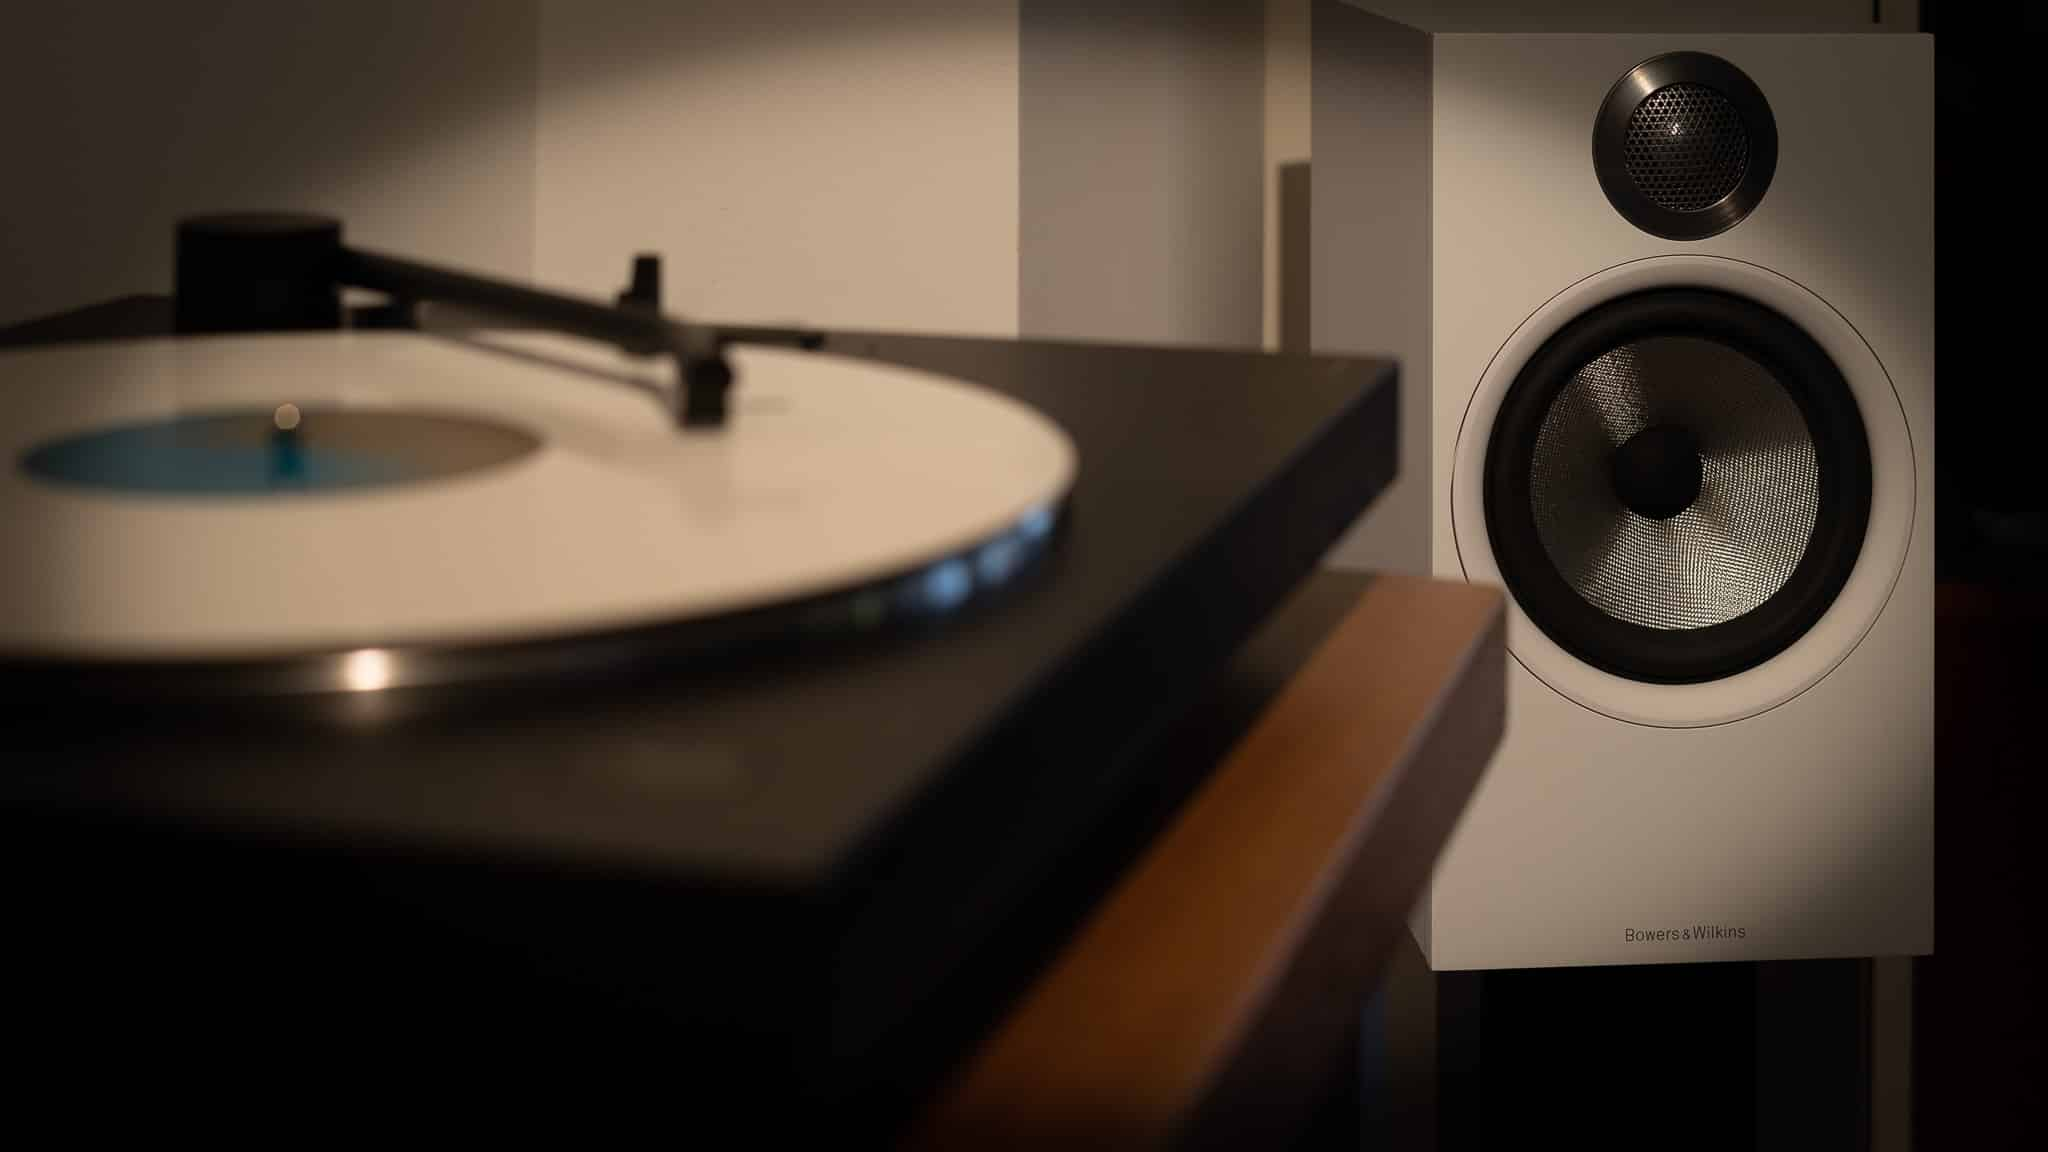 Blurred turntables in warm light with in focus speaker and white disk